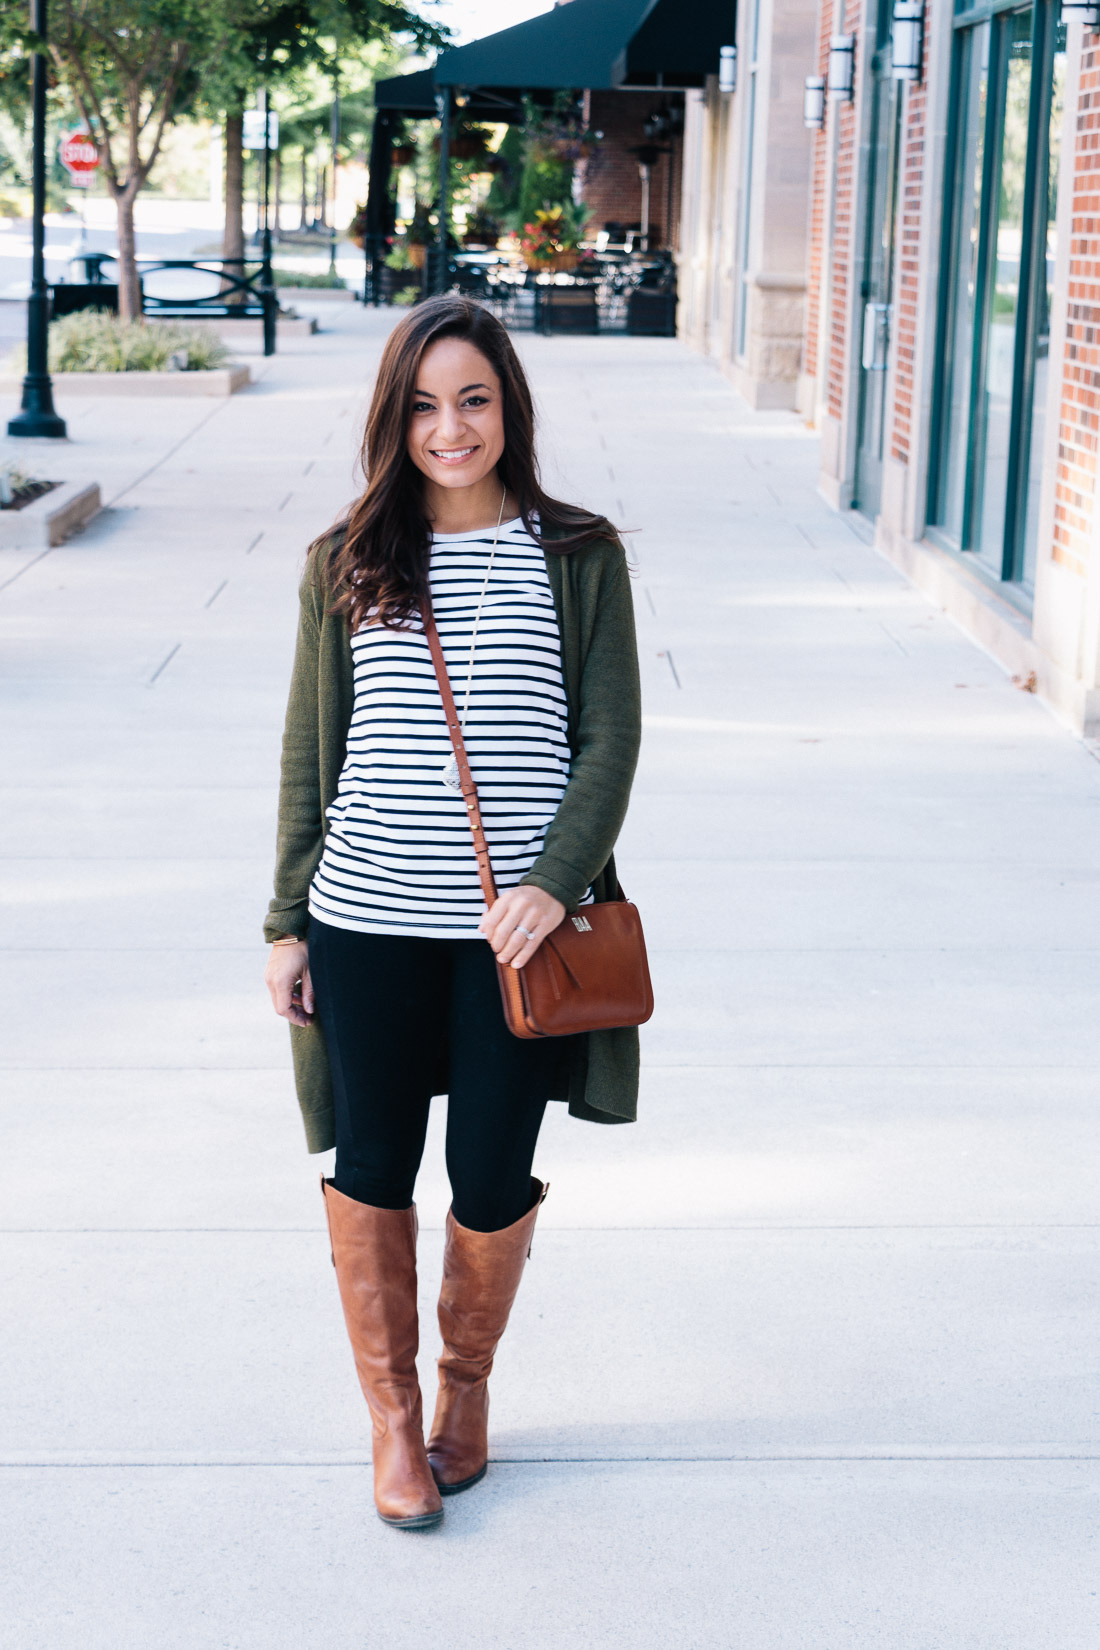 Classic Fall outfit with leggings and long cardigan and riding boots